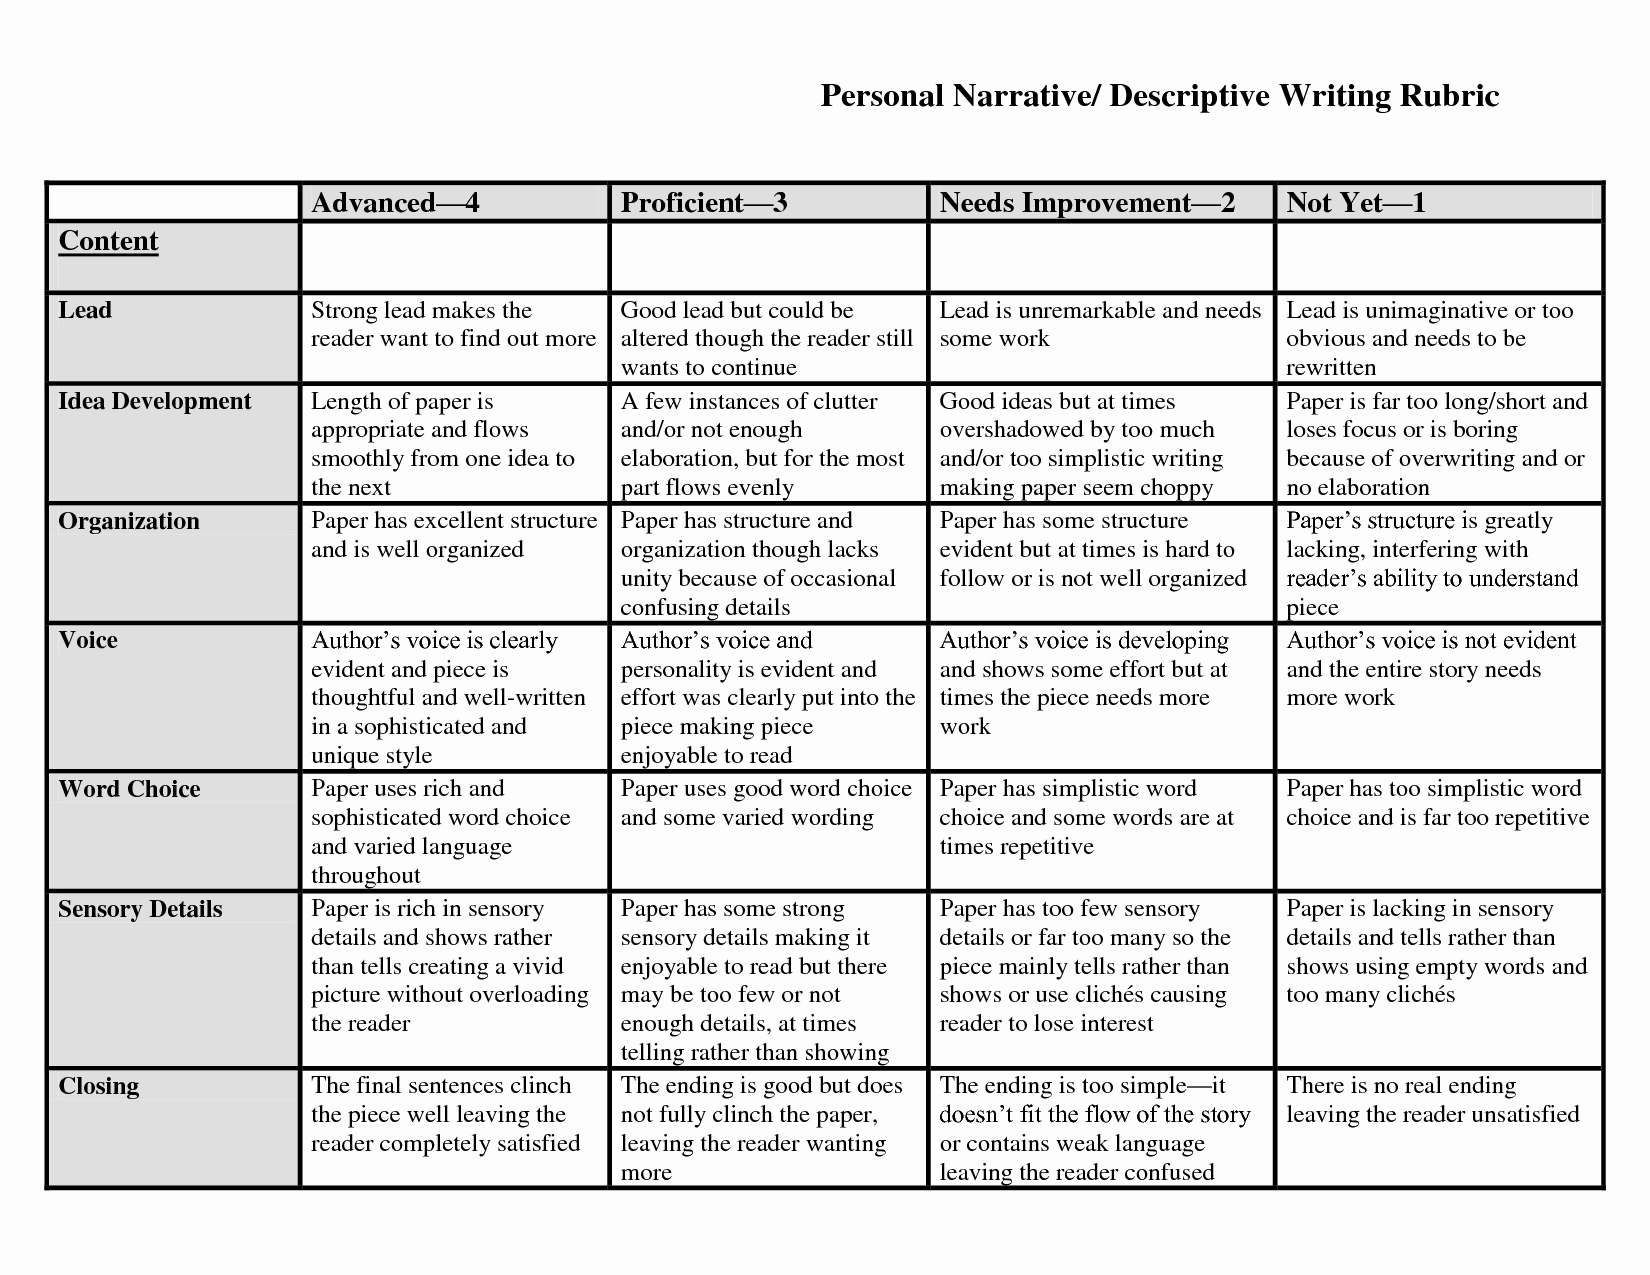 Personal Narrative High School Examples Elegant Personal Narrative Descriptive Writing Rubric